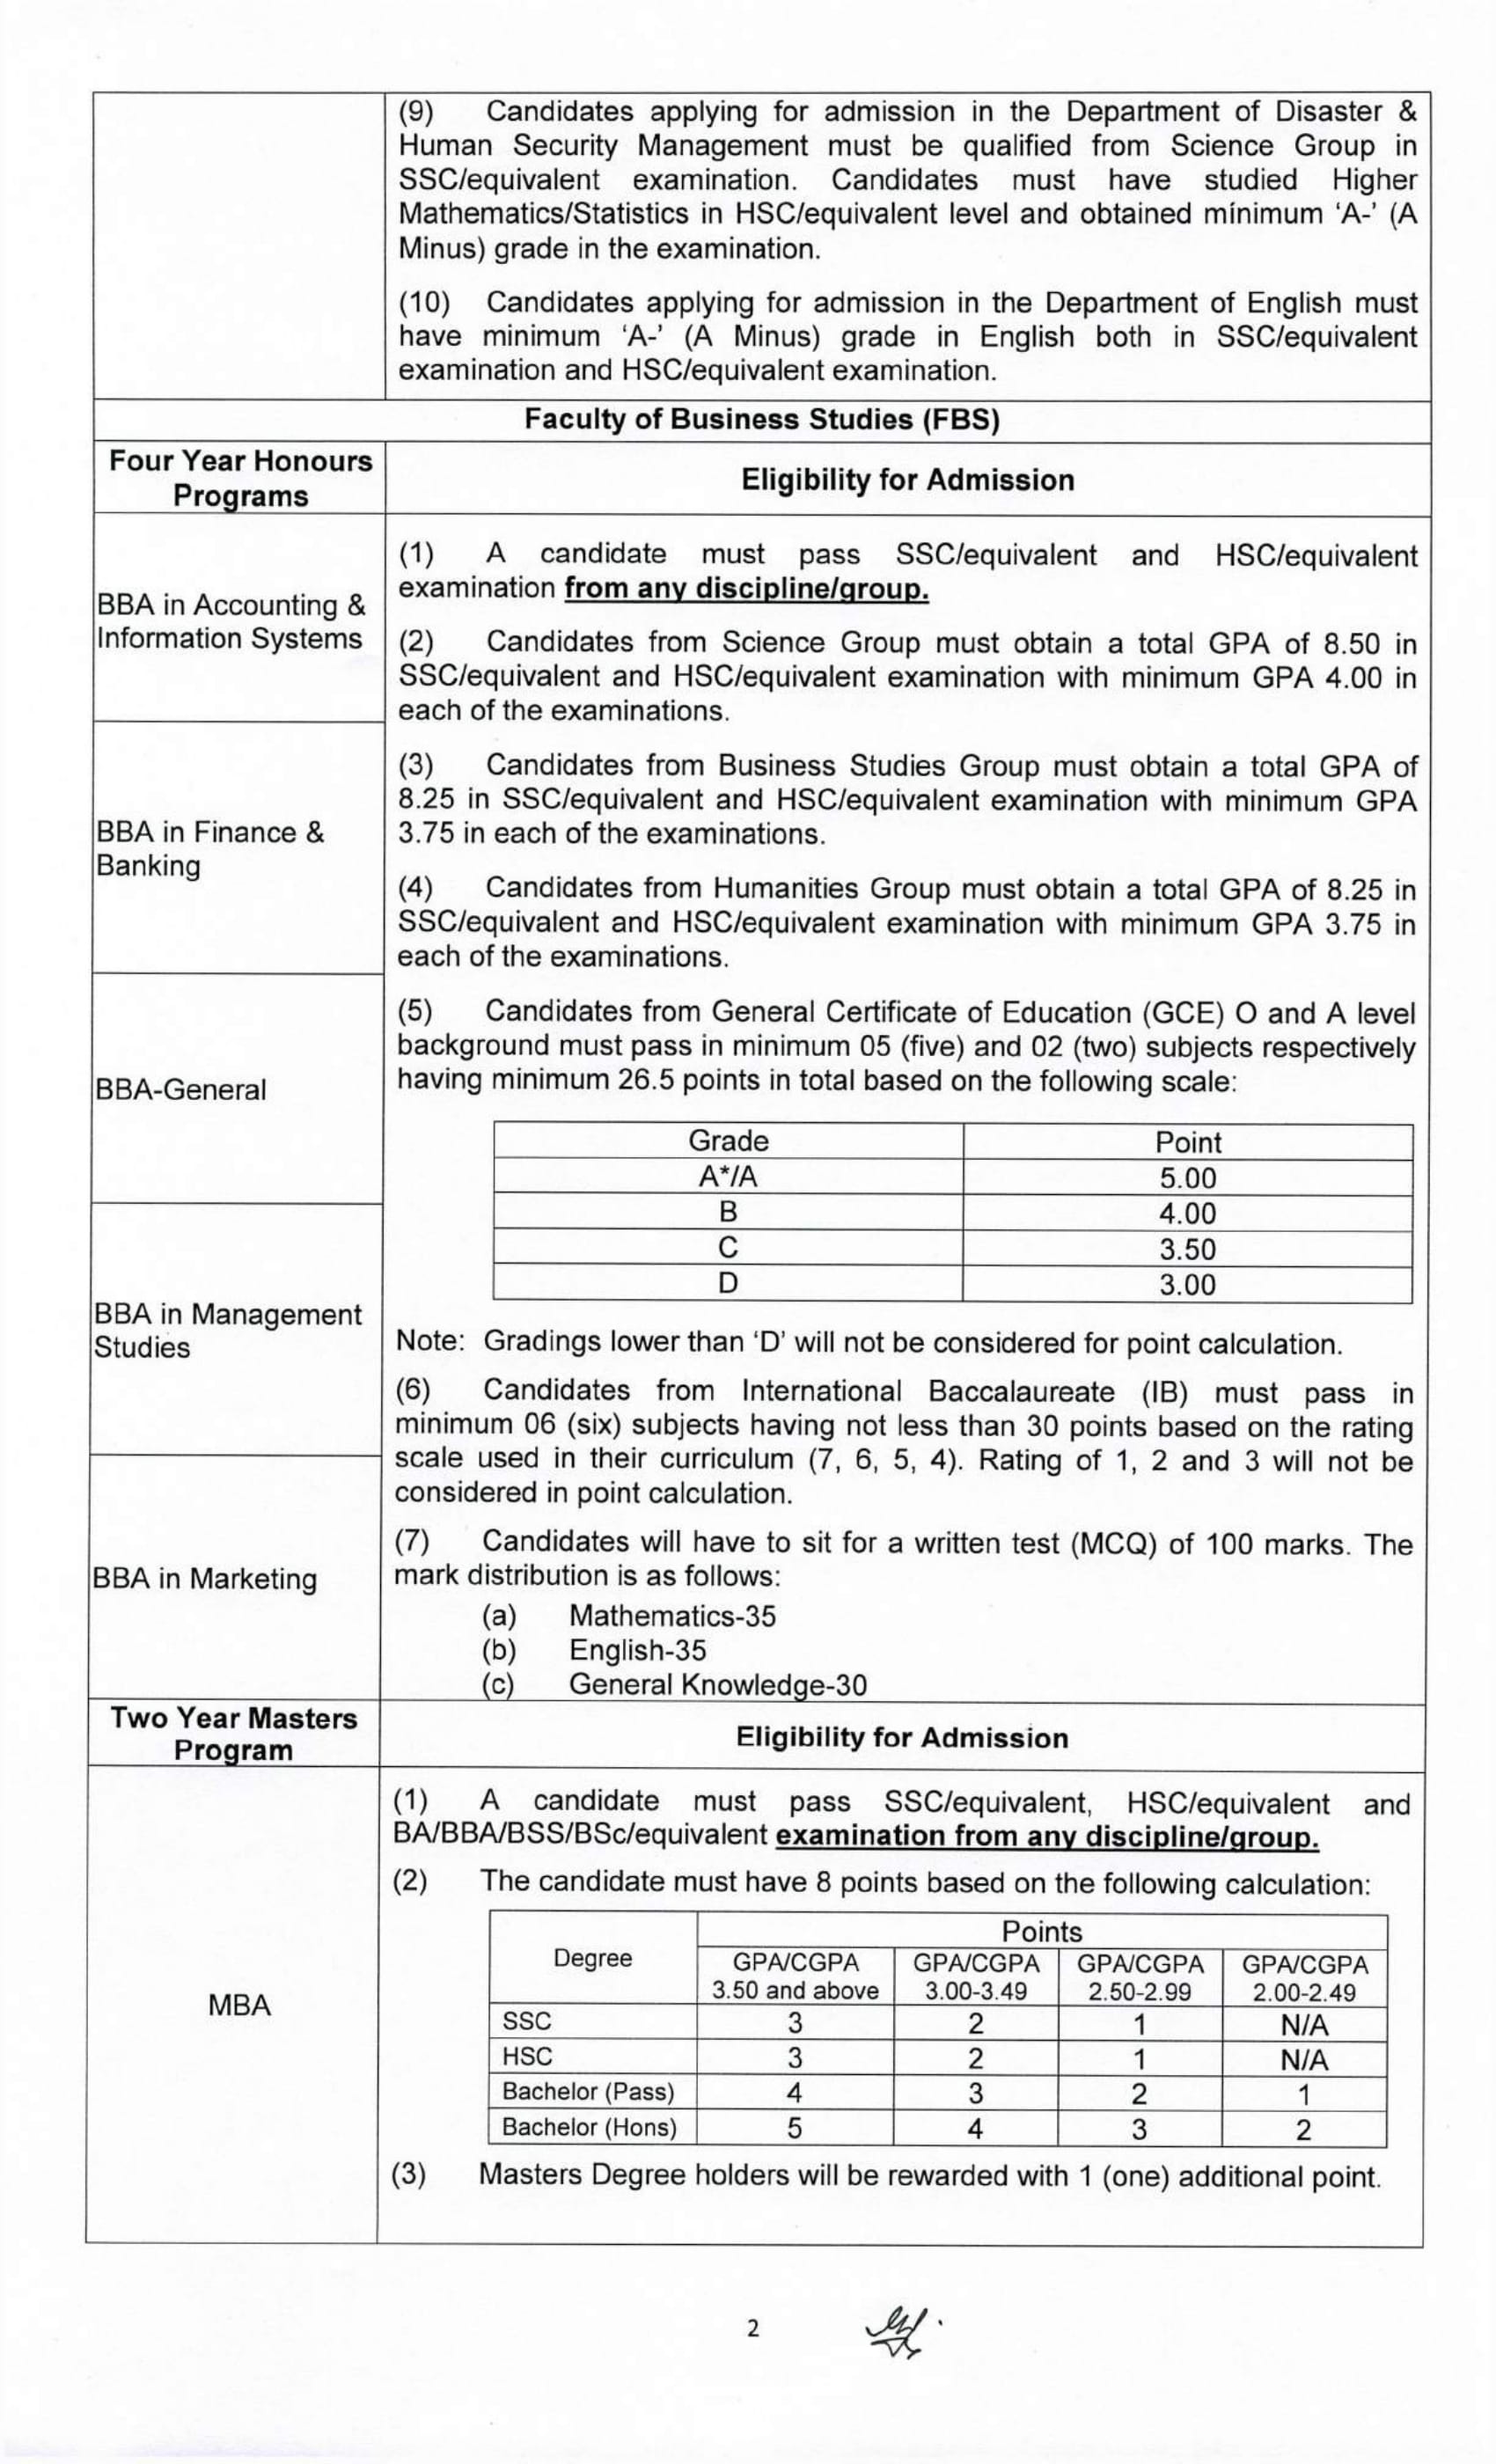 bup admission circular 2